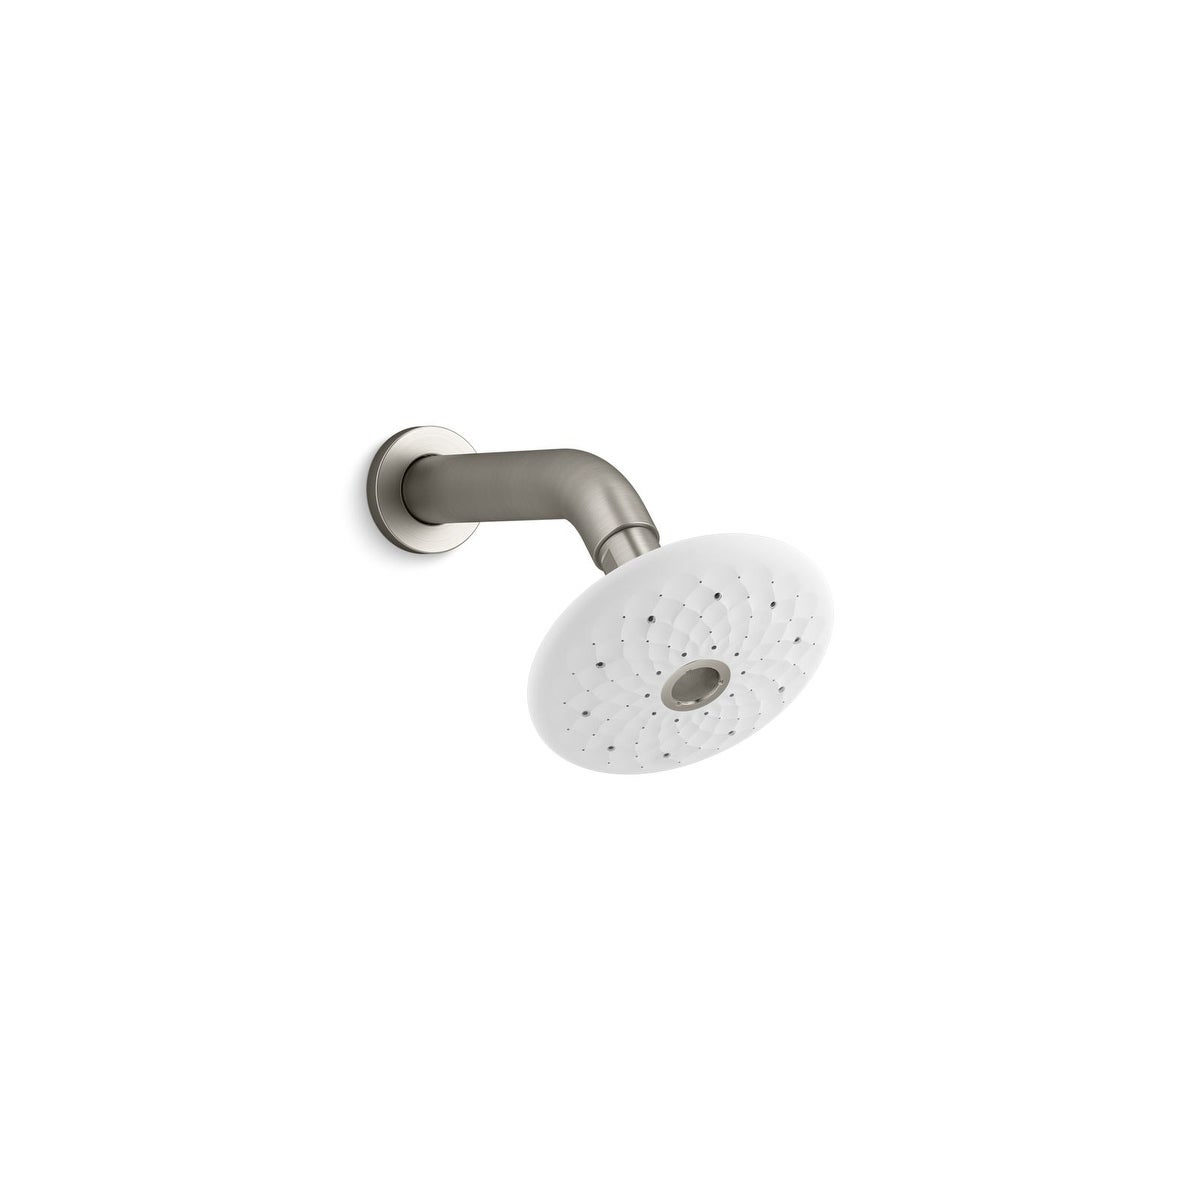 Exhale R B120 2 0 Gpm Multifunction Showerhead With Katalyst R Air Induction Technology